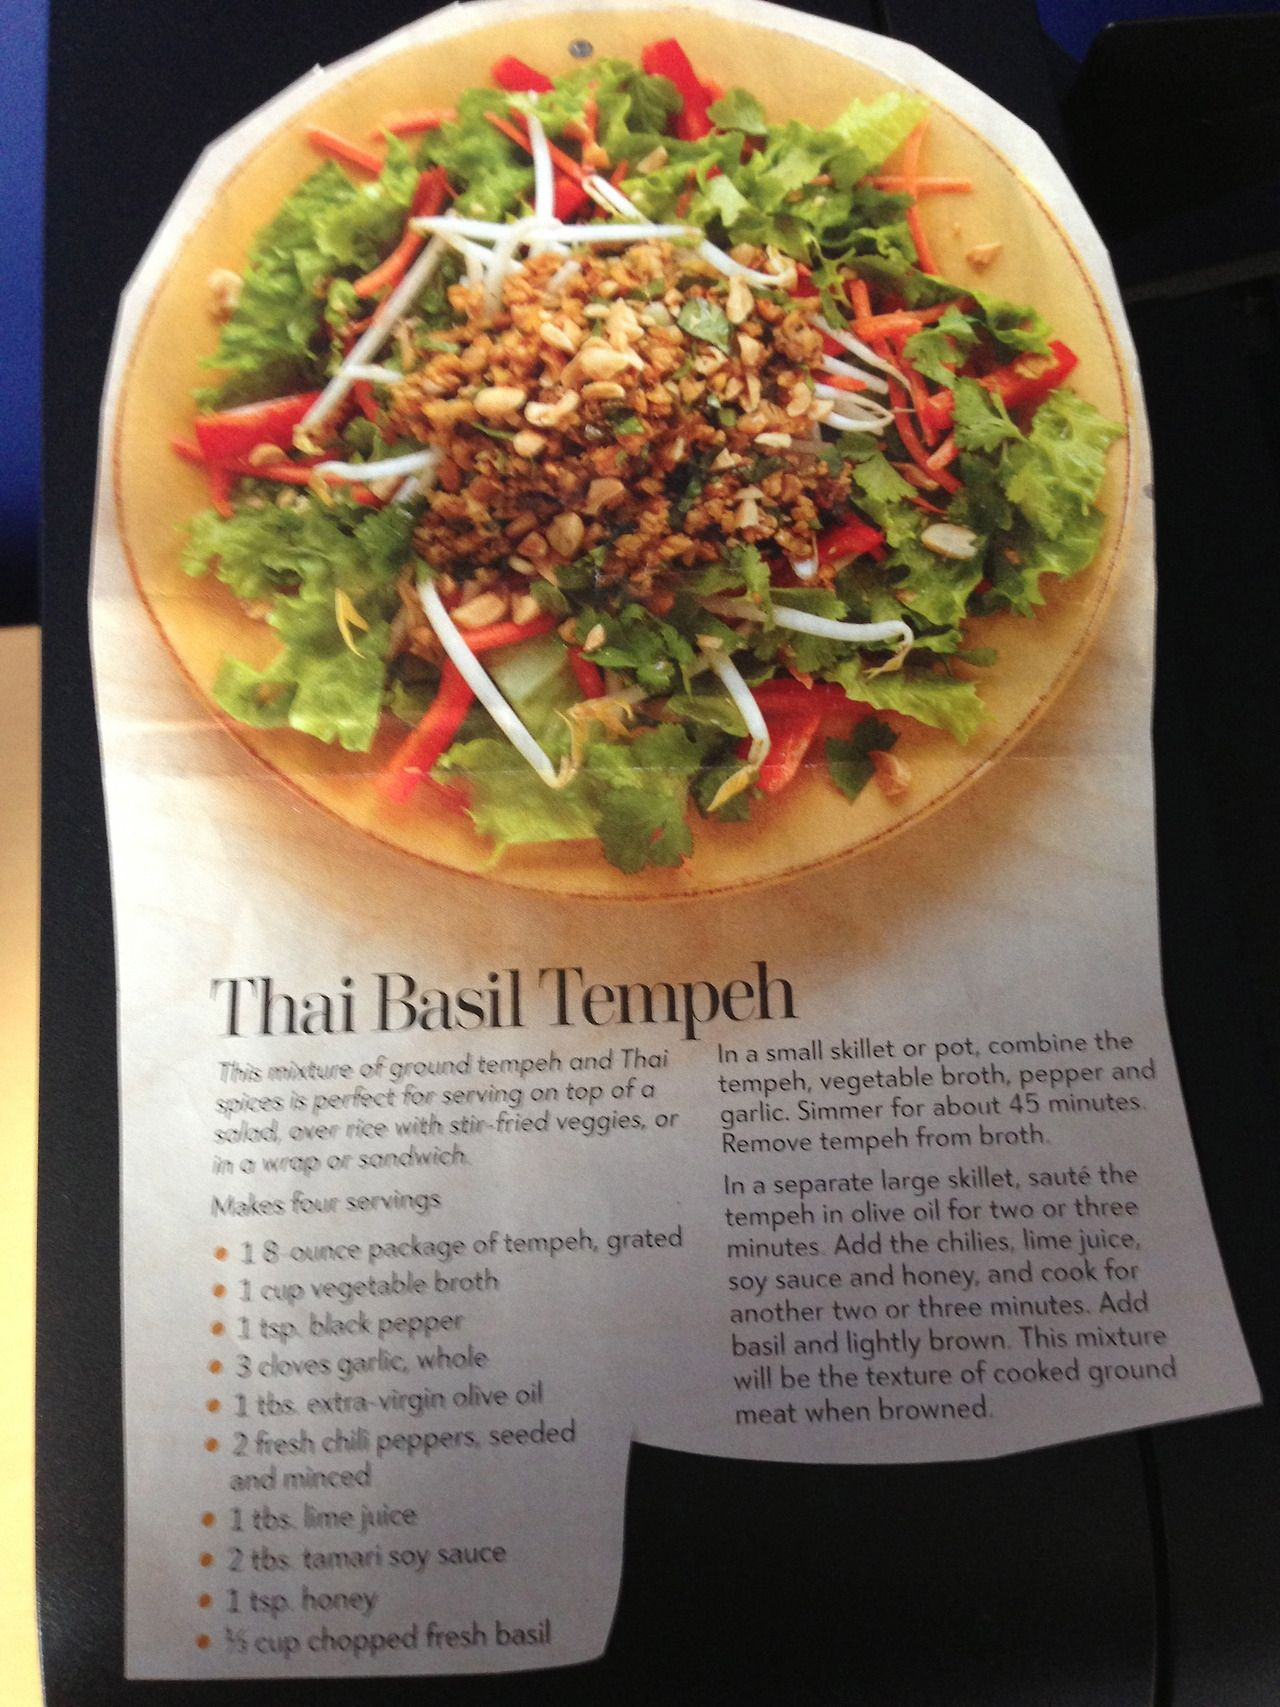 Thai Basil Tempeh Recipes Tempah Recipes Food Thai Dishes